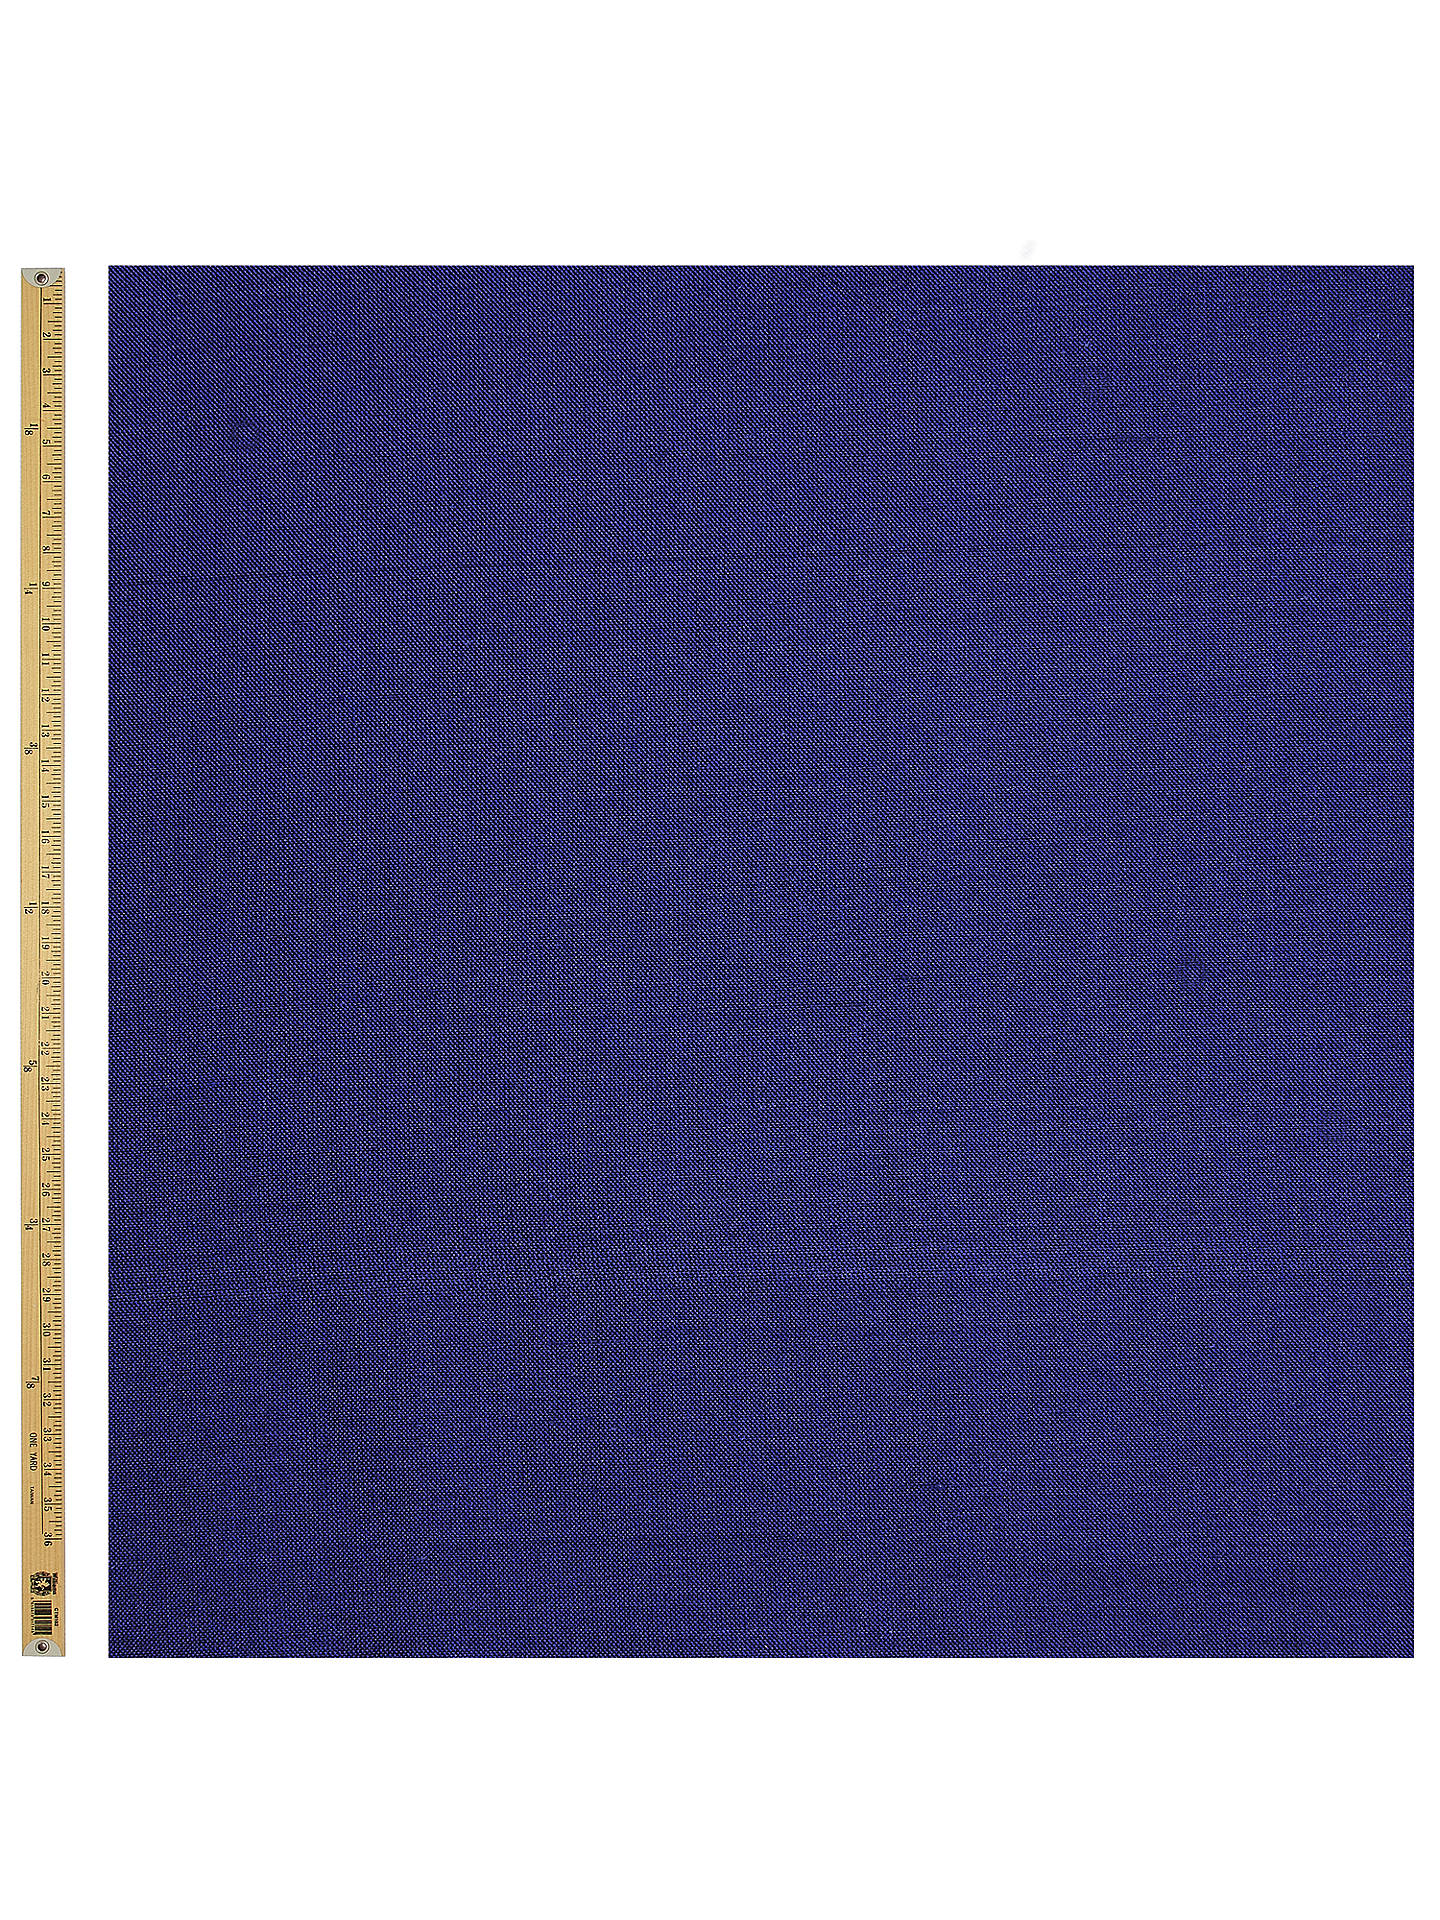 BuyJohn Lewis & Partners Silk Dupion Fashion Fabric, Midnight Blue Online at johnlewis.com